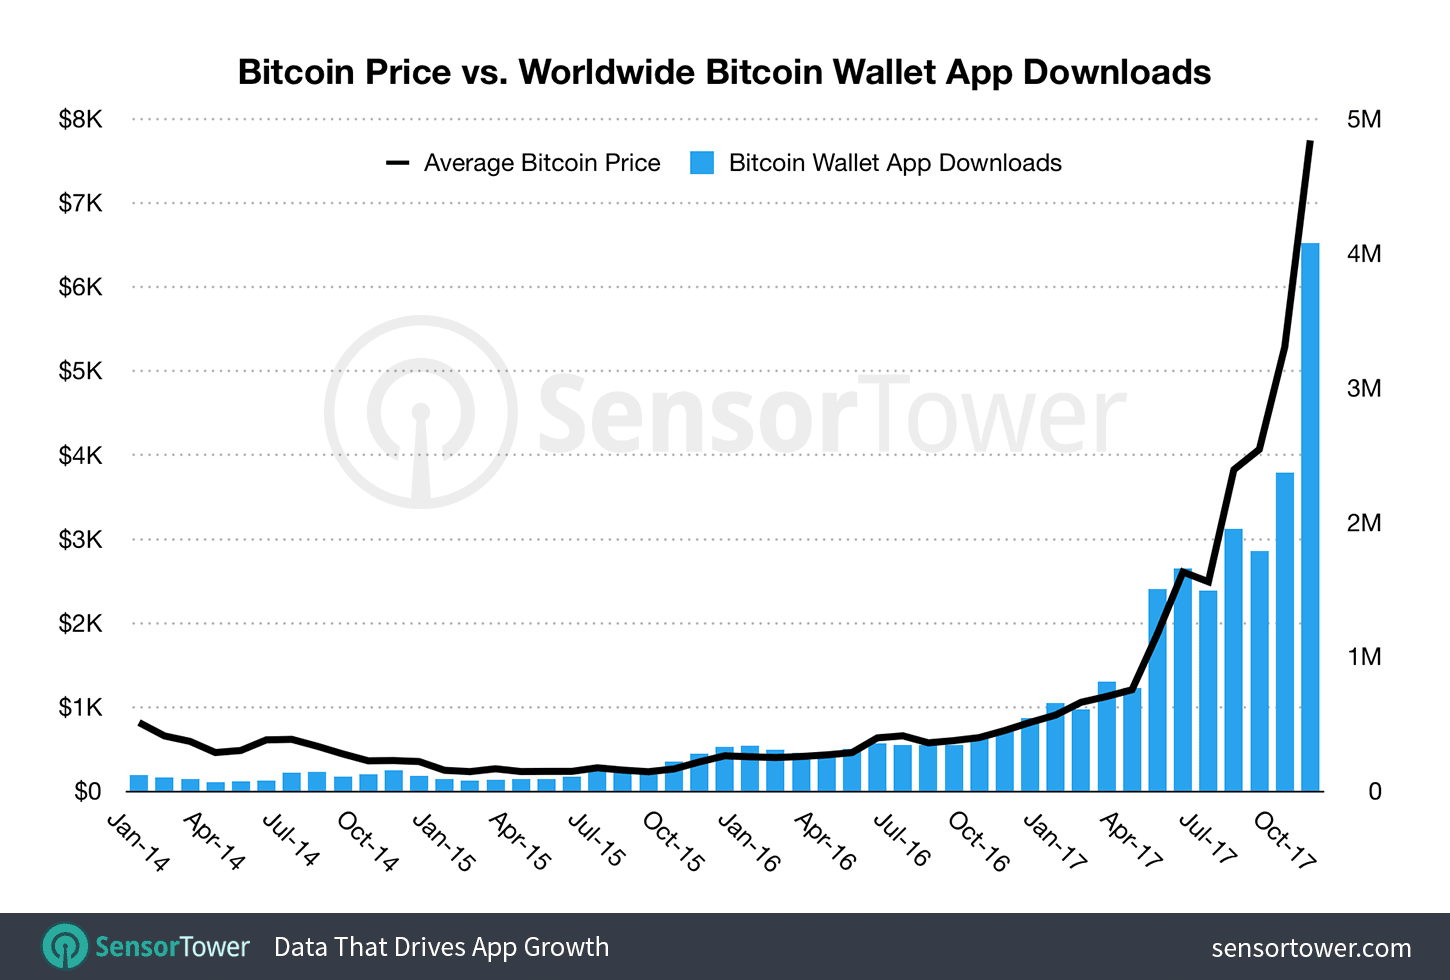 Worldwide growth of downloads of bitcoin wallet apps on the App Store and Google Play since January 2014 charted against daily bitcoin value in U.S. dollars bitcoin wallet app installs surpass 25 million since 2014, november downloads up 800% year-over-year - bitcoin wallet app download growth - Bitcoin Wallet App Installs Surpass 25 Million Since 2014, November Downloads Up 800% Year-Over-Year